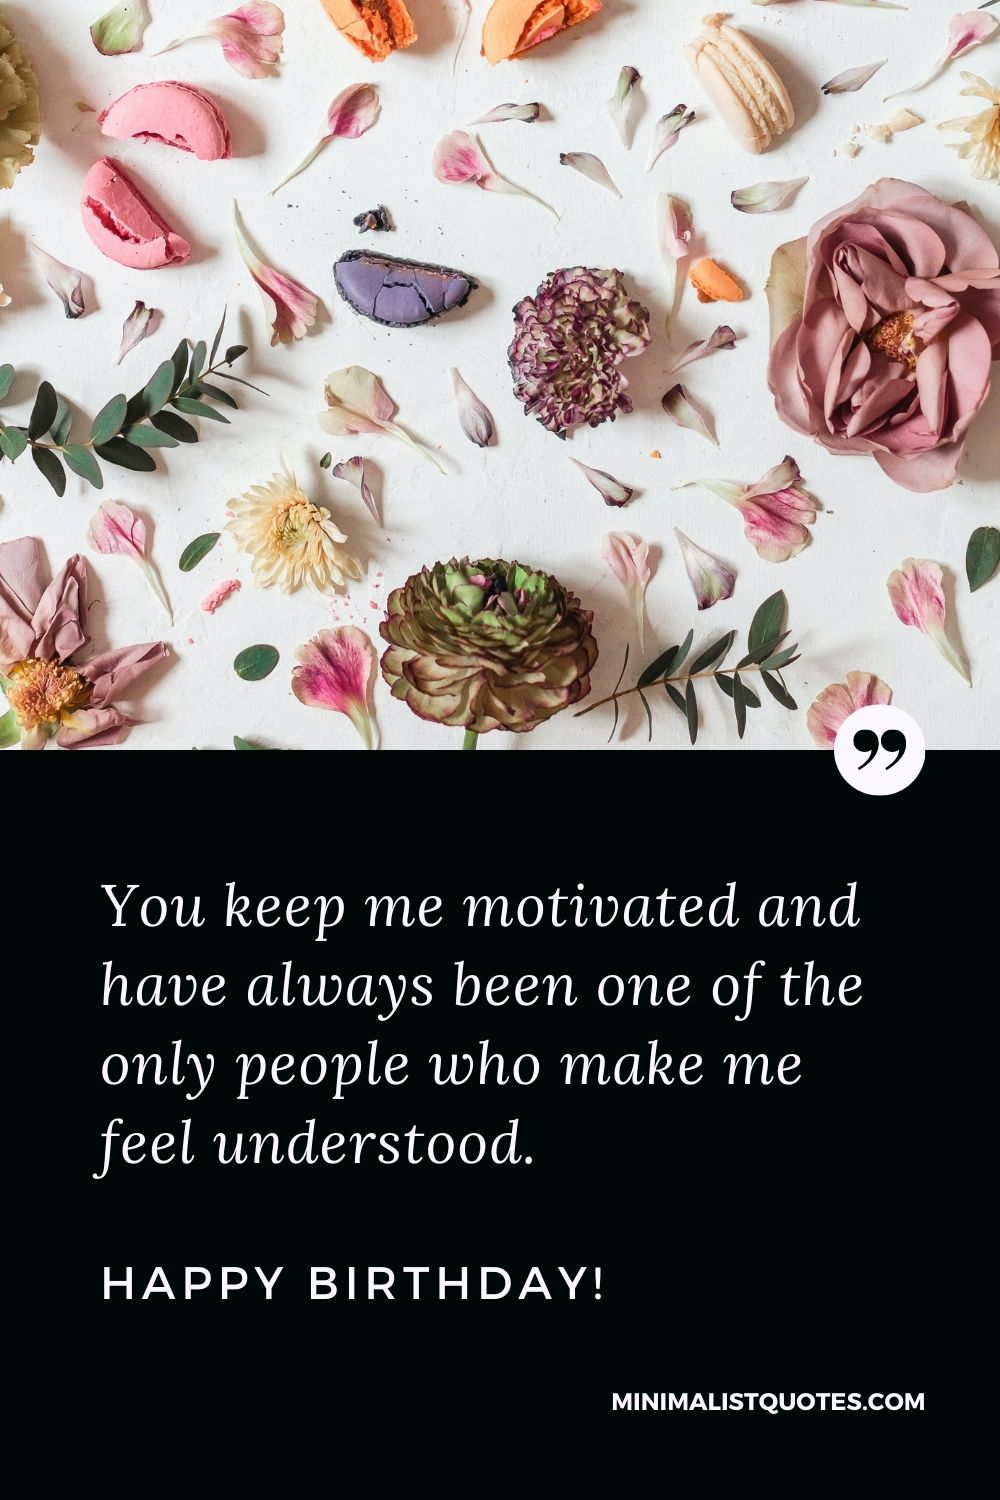 Birthday Quote, Message & Wish With Image: You keep me motivated and have always been one of the only people who make me feel understood. Happy Birthday!